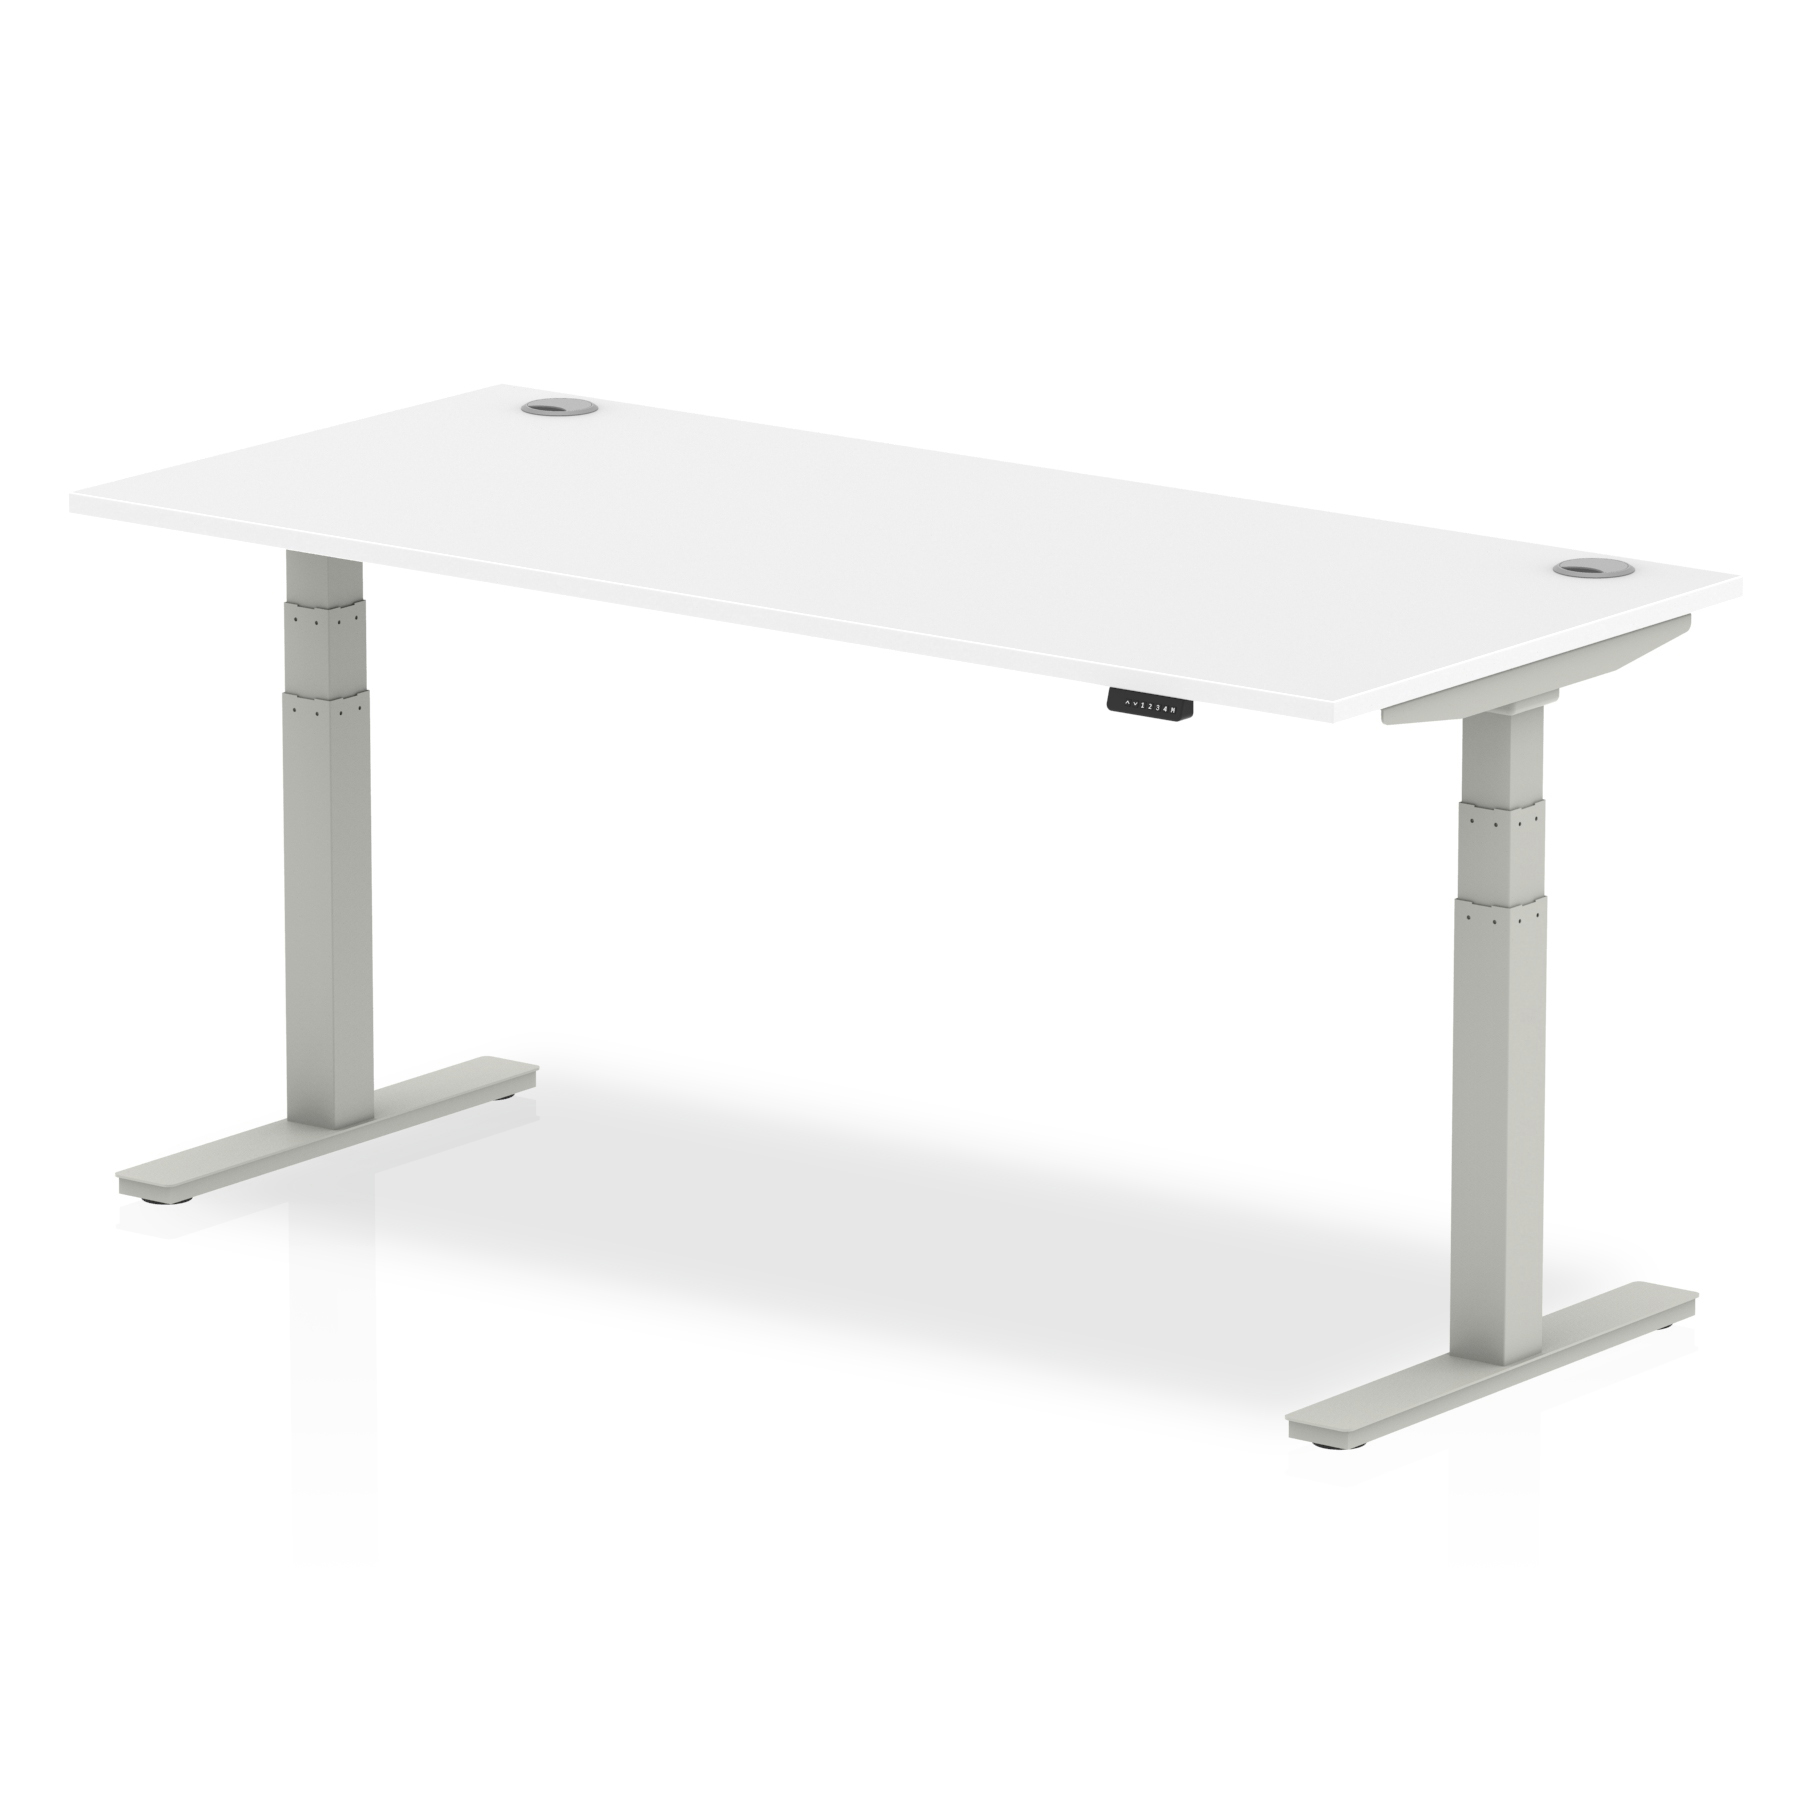 Trexus Sit Stand Desk With Cable Ports Silver Legs 1800x800mm White Ref HA01092